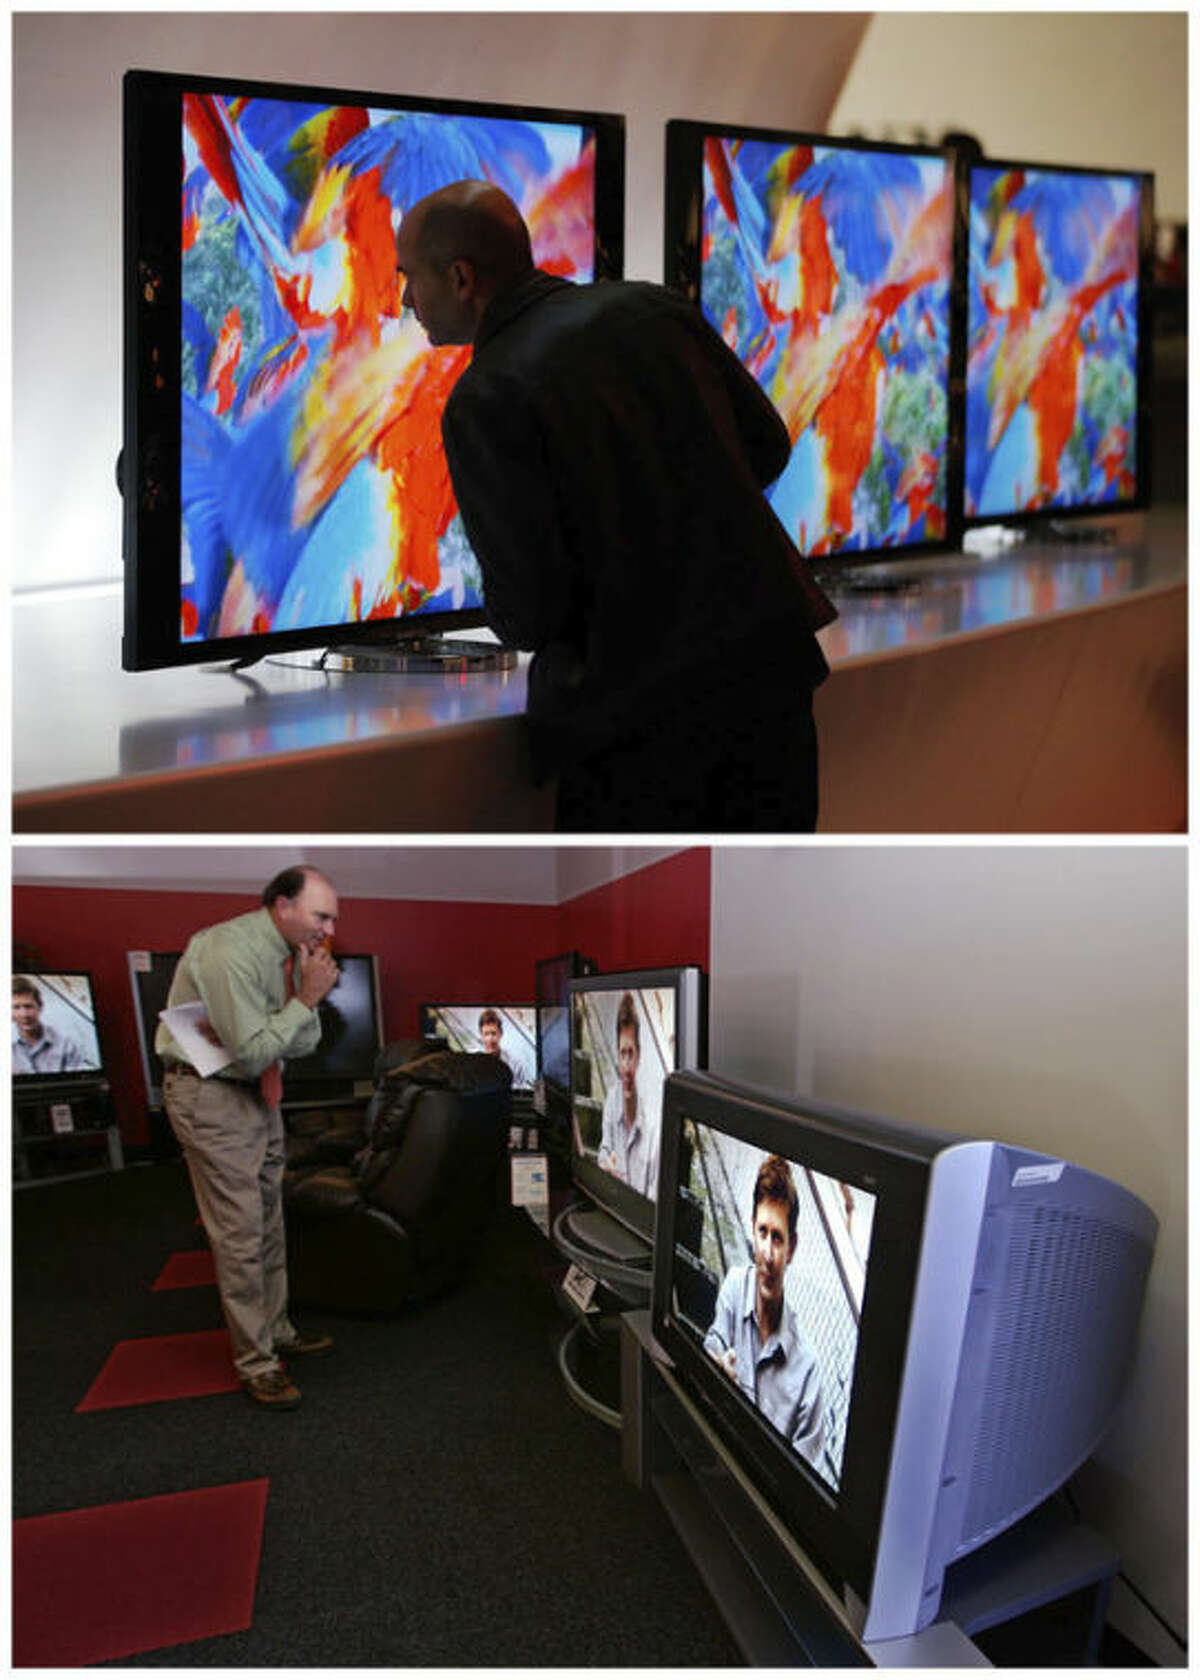 FILE -In this combination of Associated Press file photos, a man, top, looks at the back of a Sony's 4K XBR LED television in Las Vegas, on Monday, Jan. 7, 2013. and bottom, a man ooks at a CRT television in Redwood City, Calif., on Wednesday, Oct. 18, 2006. Some 40-inch LED televisions bought in 2013 use 80 percent less power than the cathode ray tube televisions of the past. Some use just $8 worth of electricity over a year when used five hours a day. (AP Photo/File)